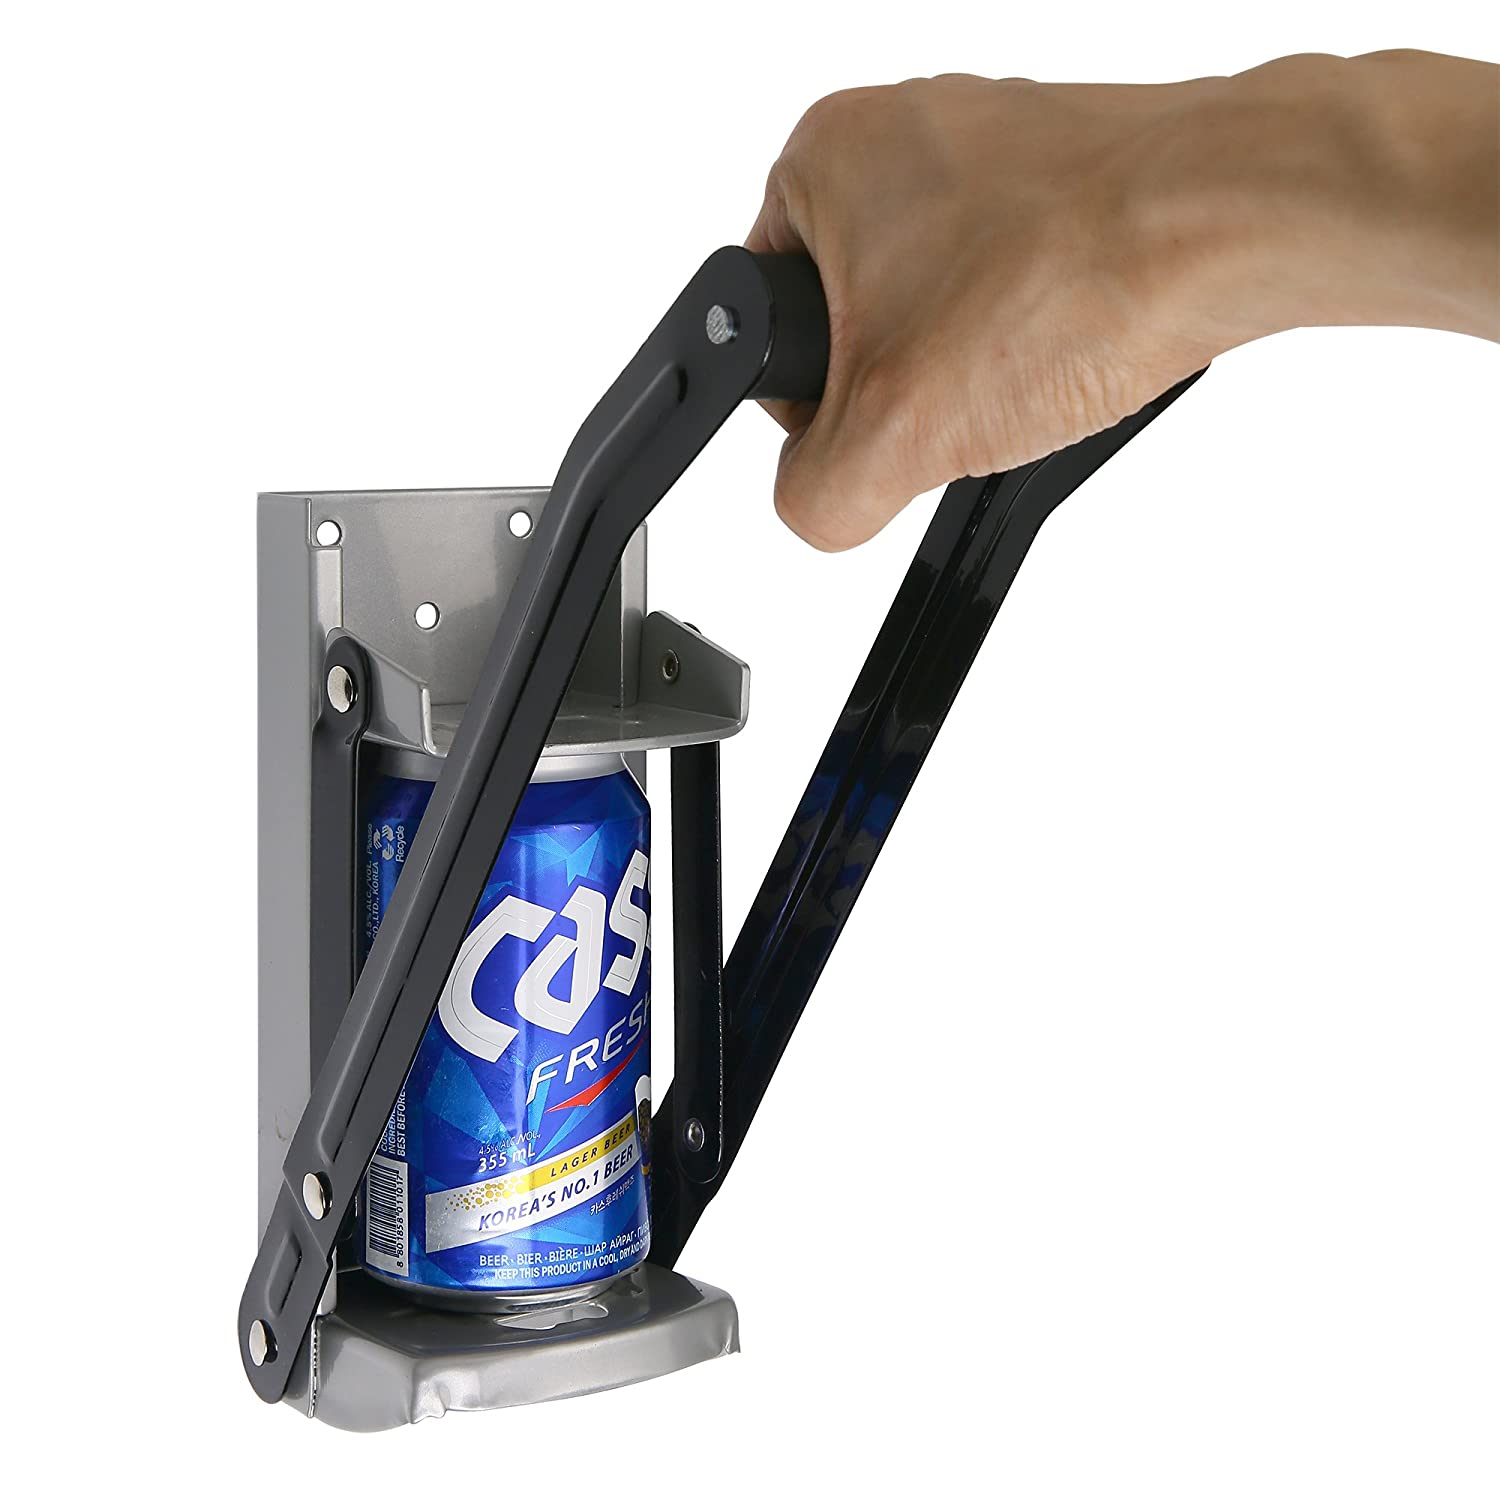 Aynoo 12 oz Can Crusher for Recycling/Bottle Opener Smasher, Crushes Soda Cans and Beer Cans Wall Mounted- Eco-Friendly Recycling Tool Heavy Duty Metal Can Crusher/Smasher (12oz Grey) Aynoo Inc.